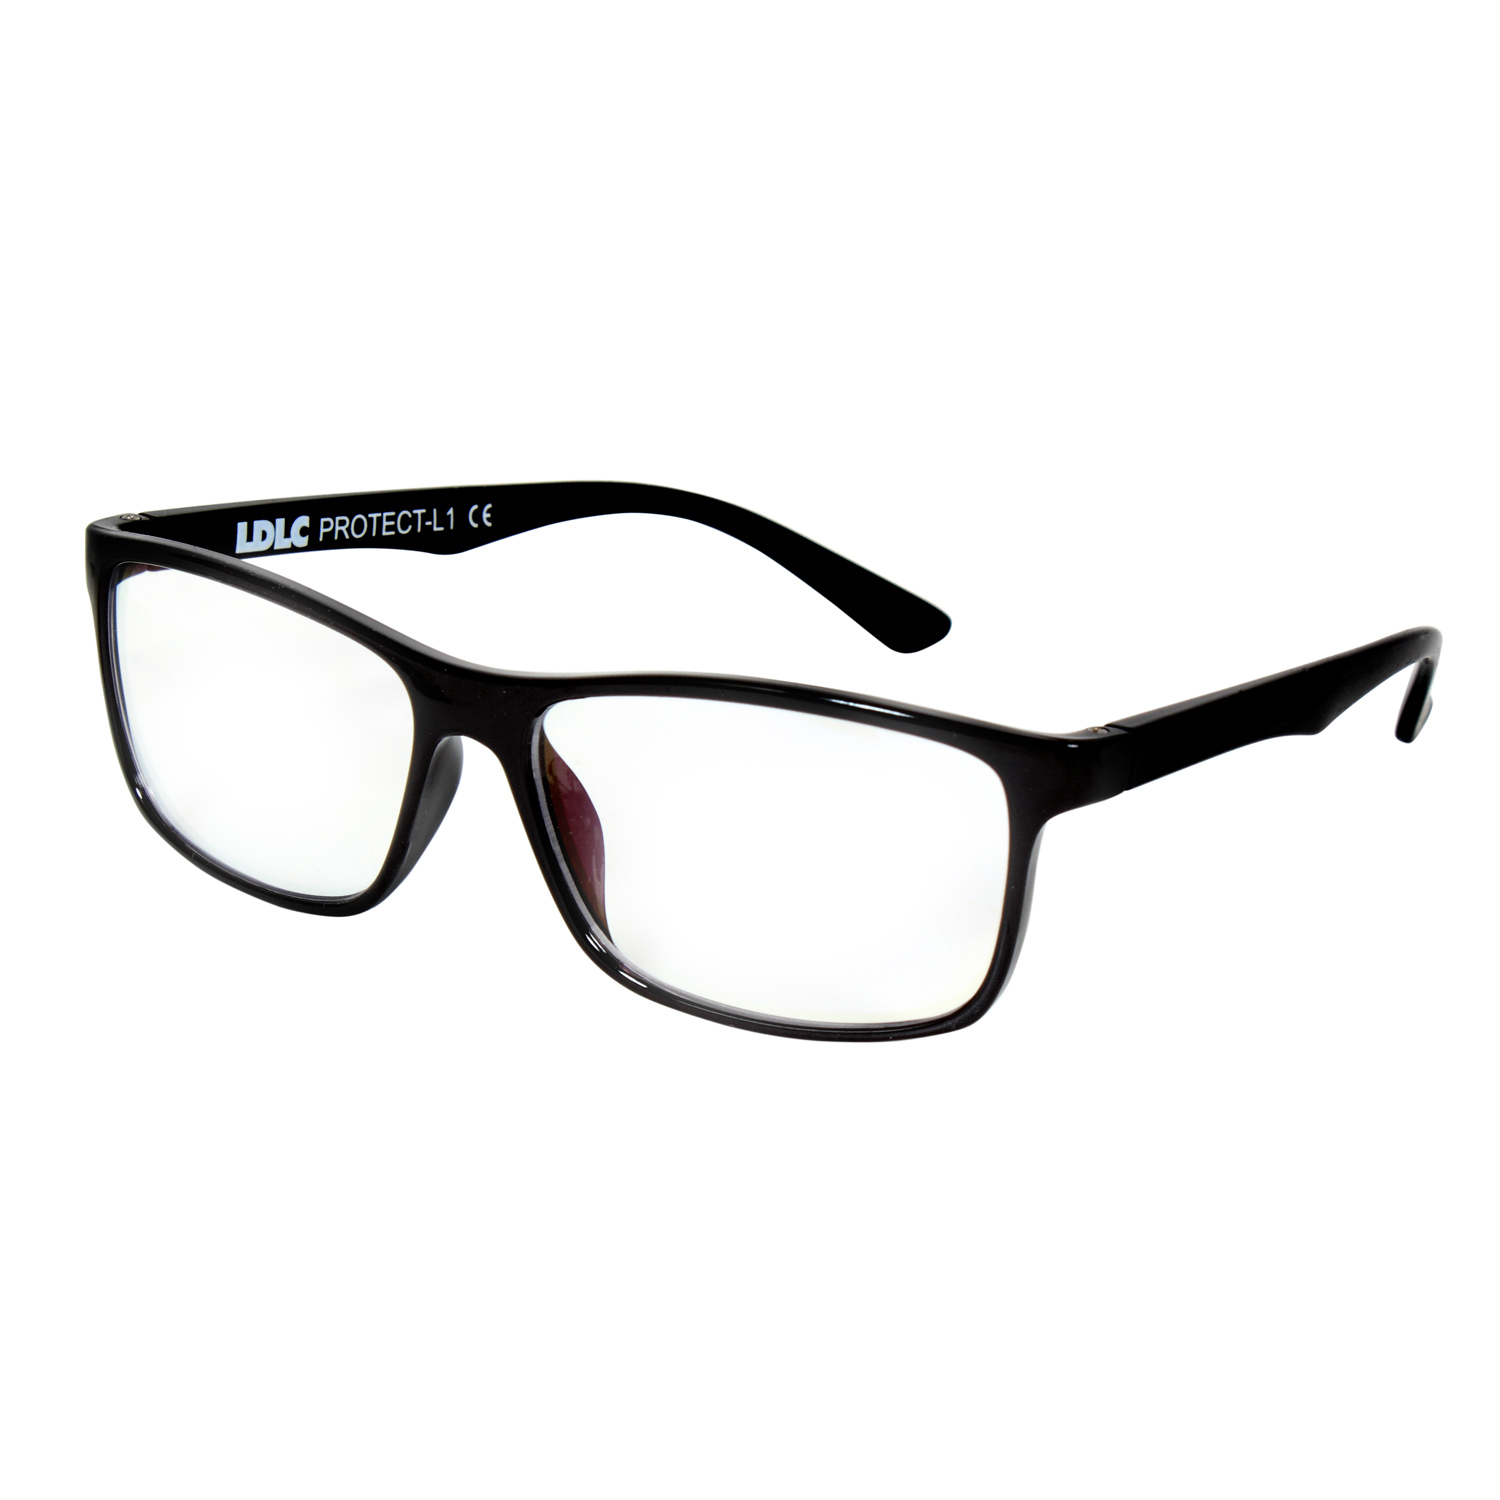 lunette de protection ordinateur